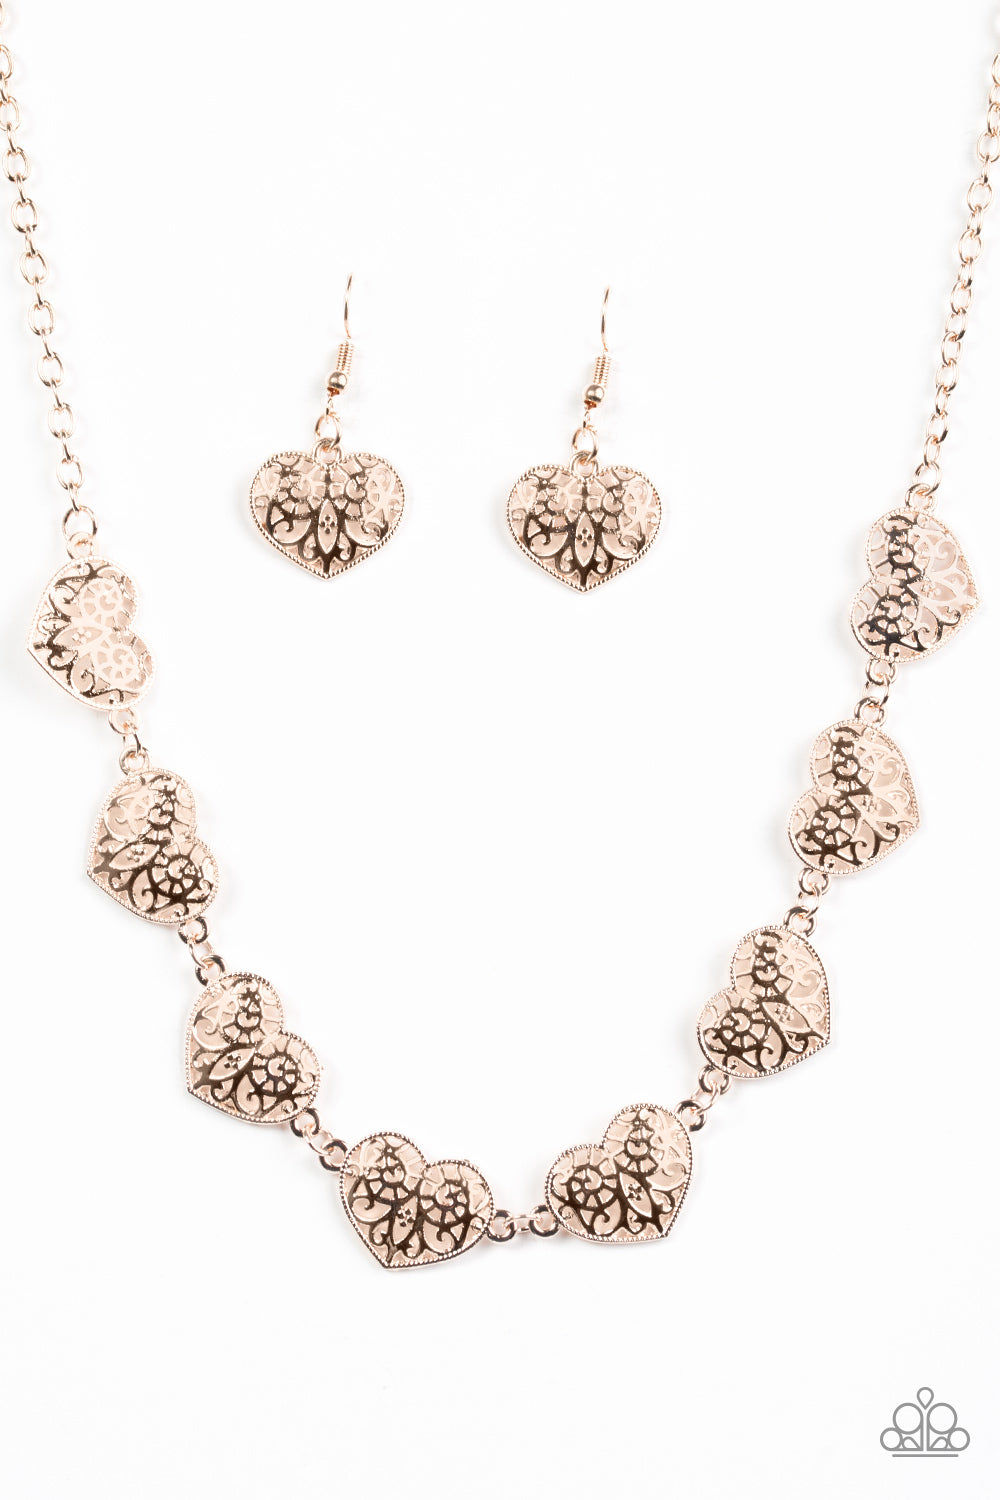 Easy To Adore Rose Gold Necklace Glamour And Glitz By Peggy Andersen